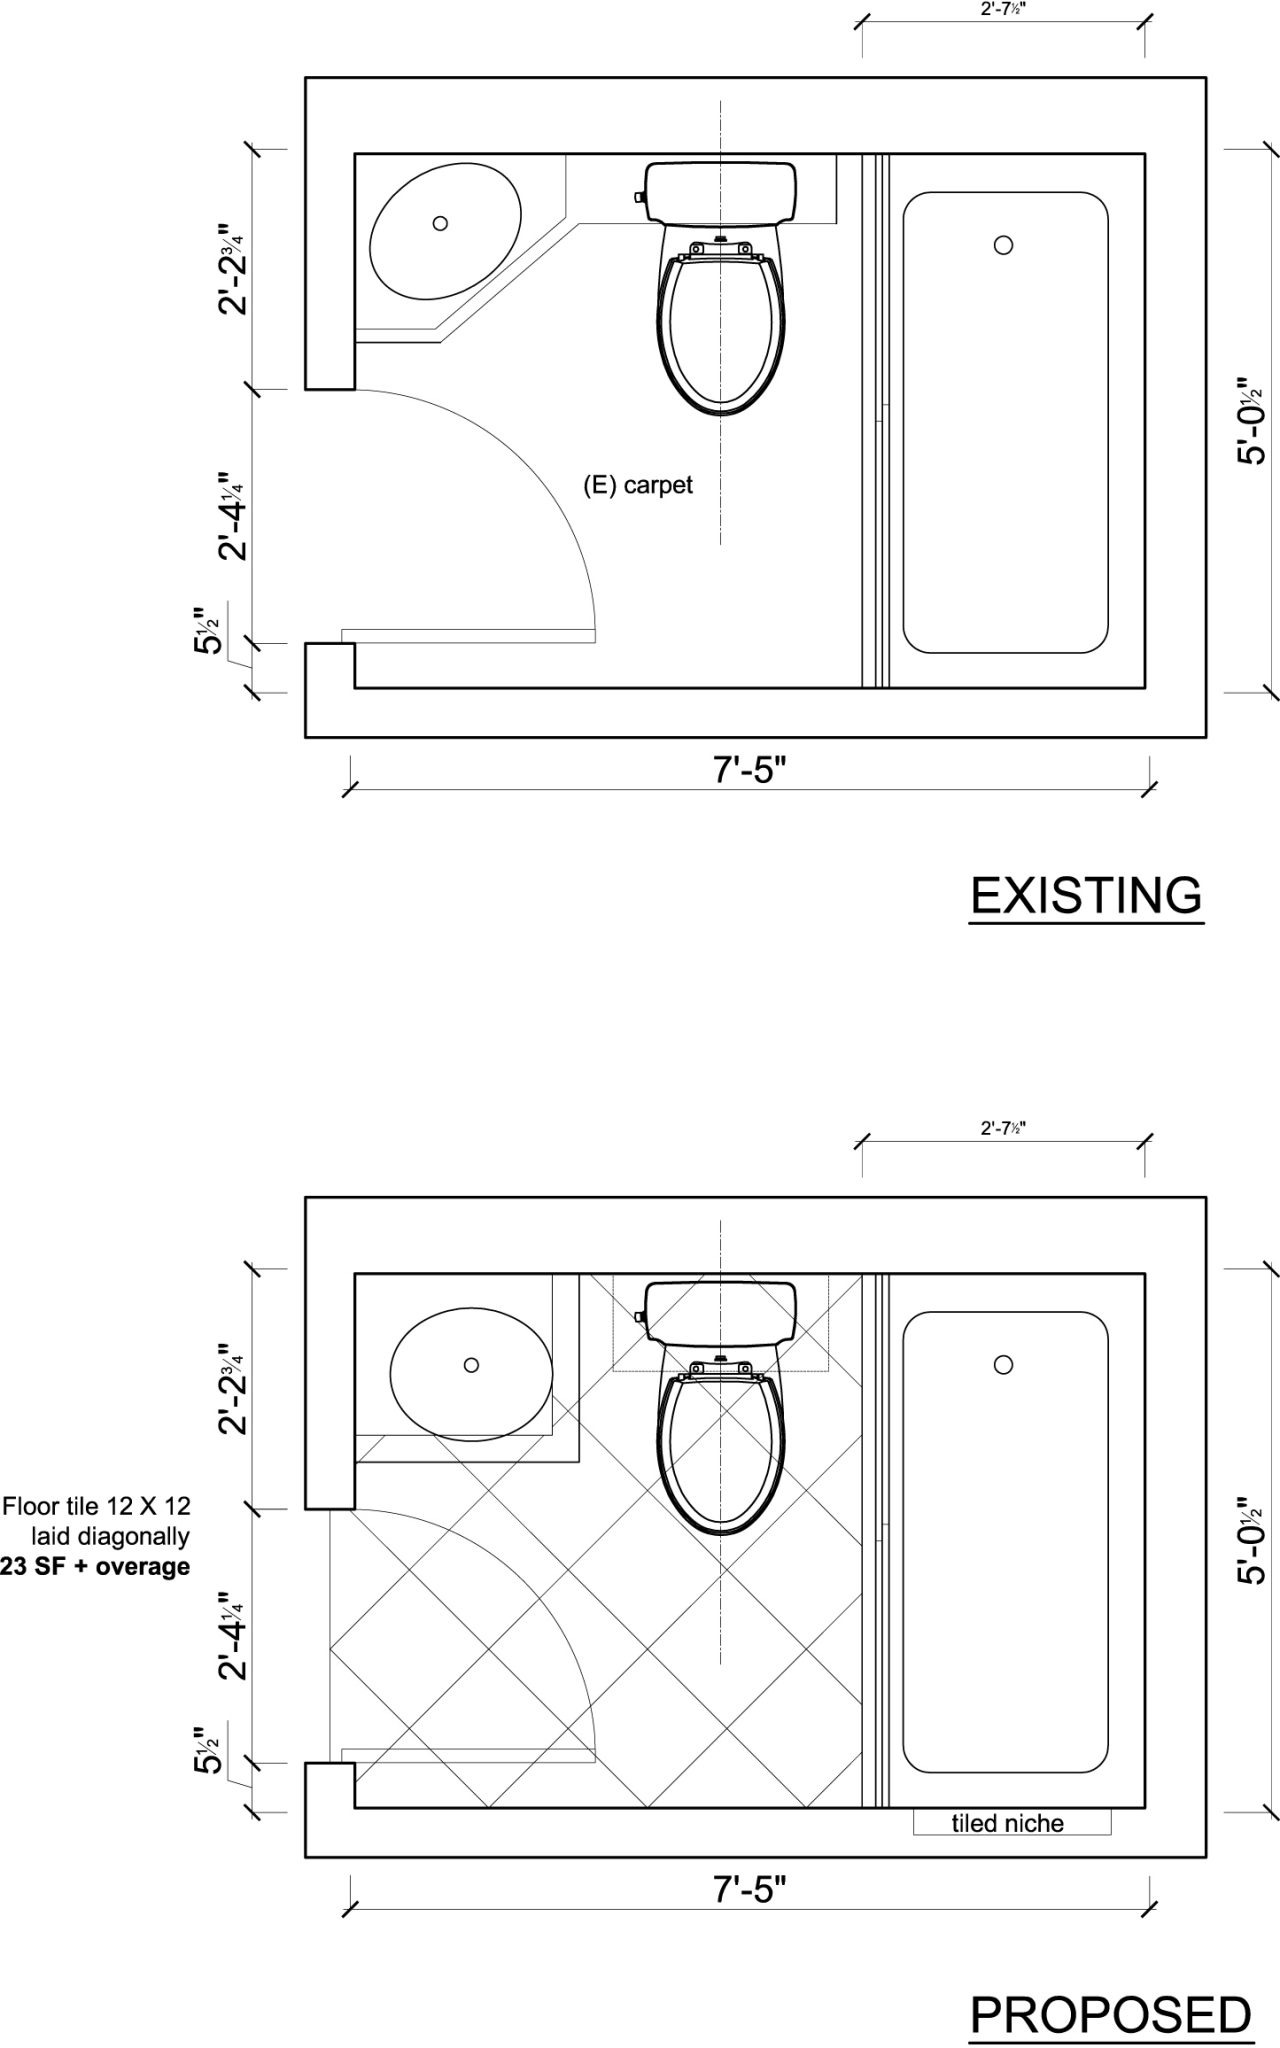 The plan for reorienting the sink, and new tile floor